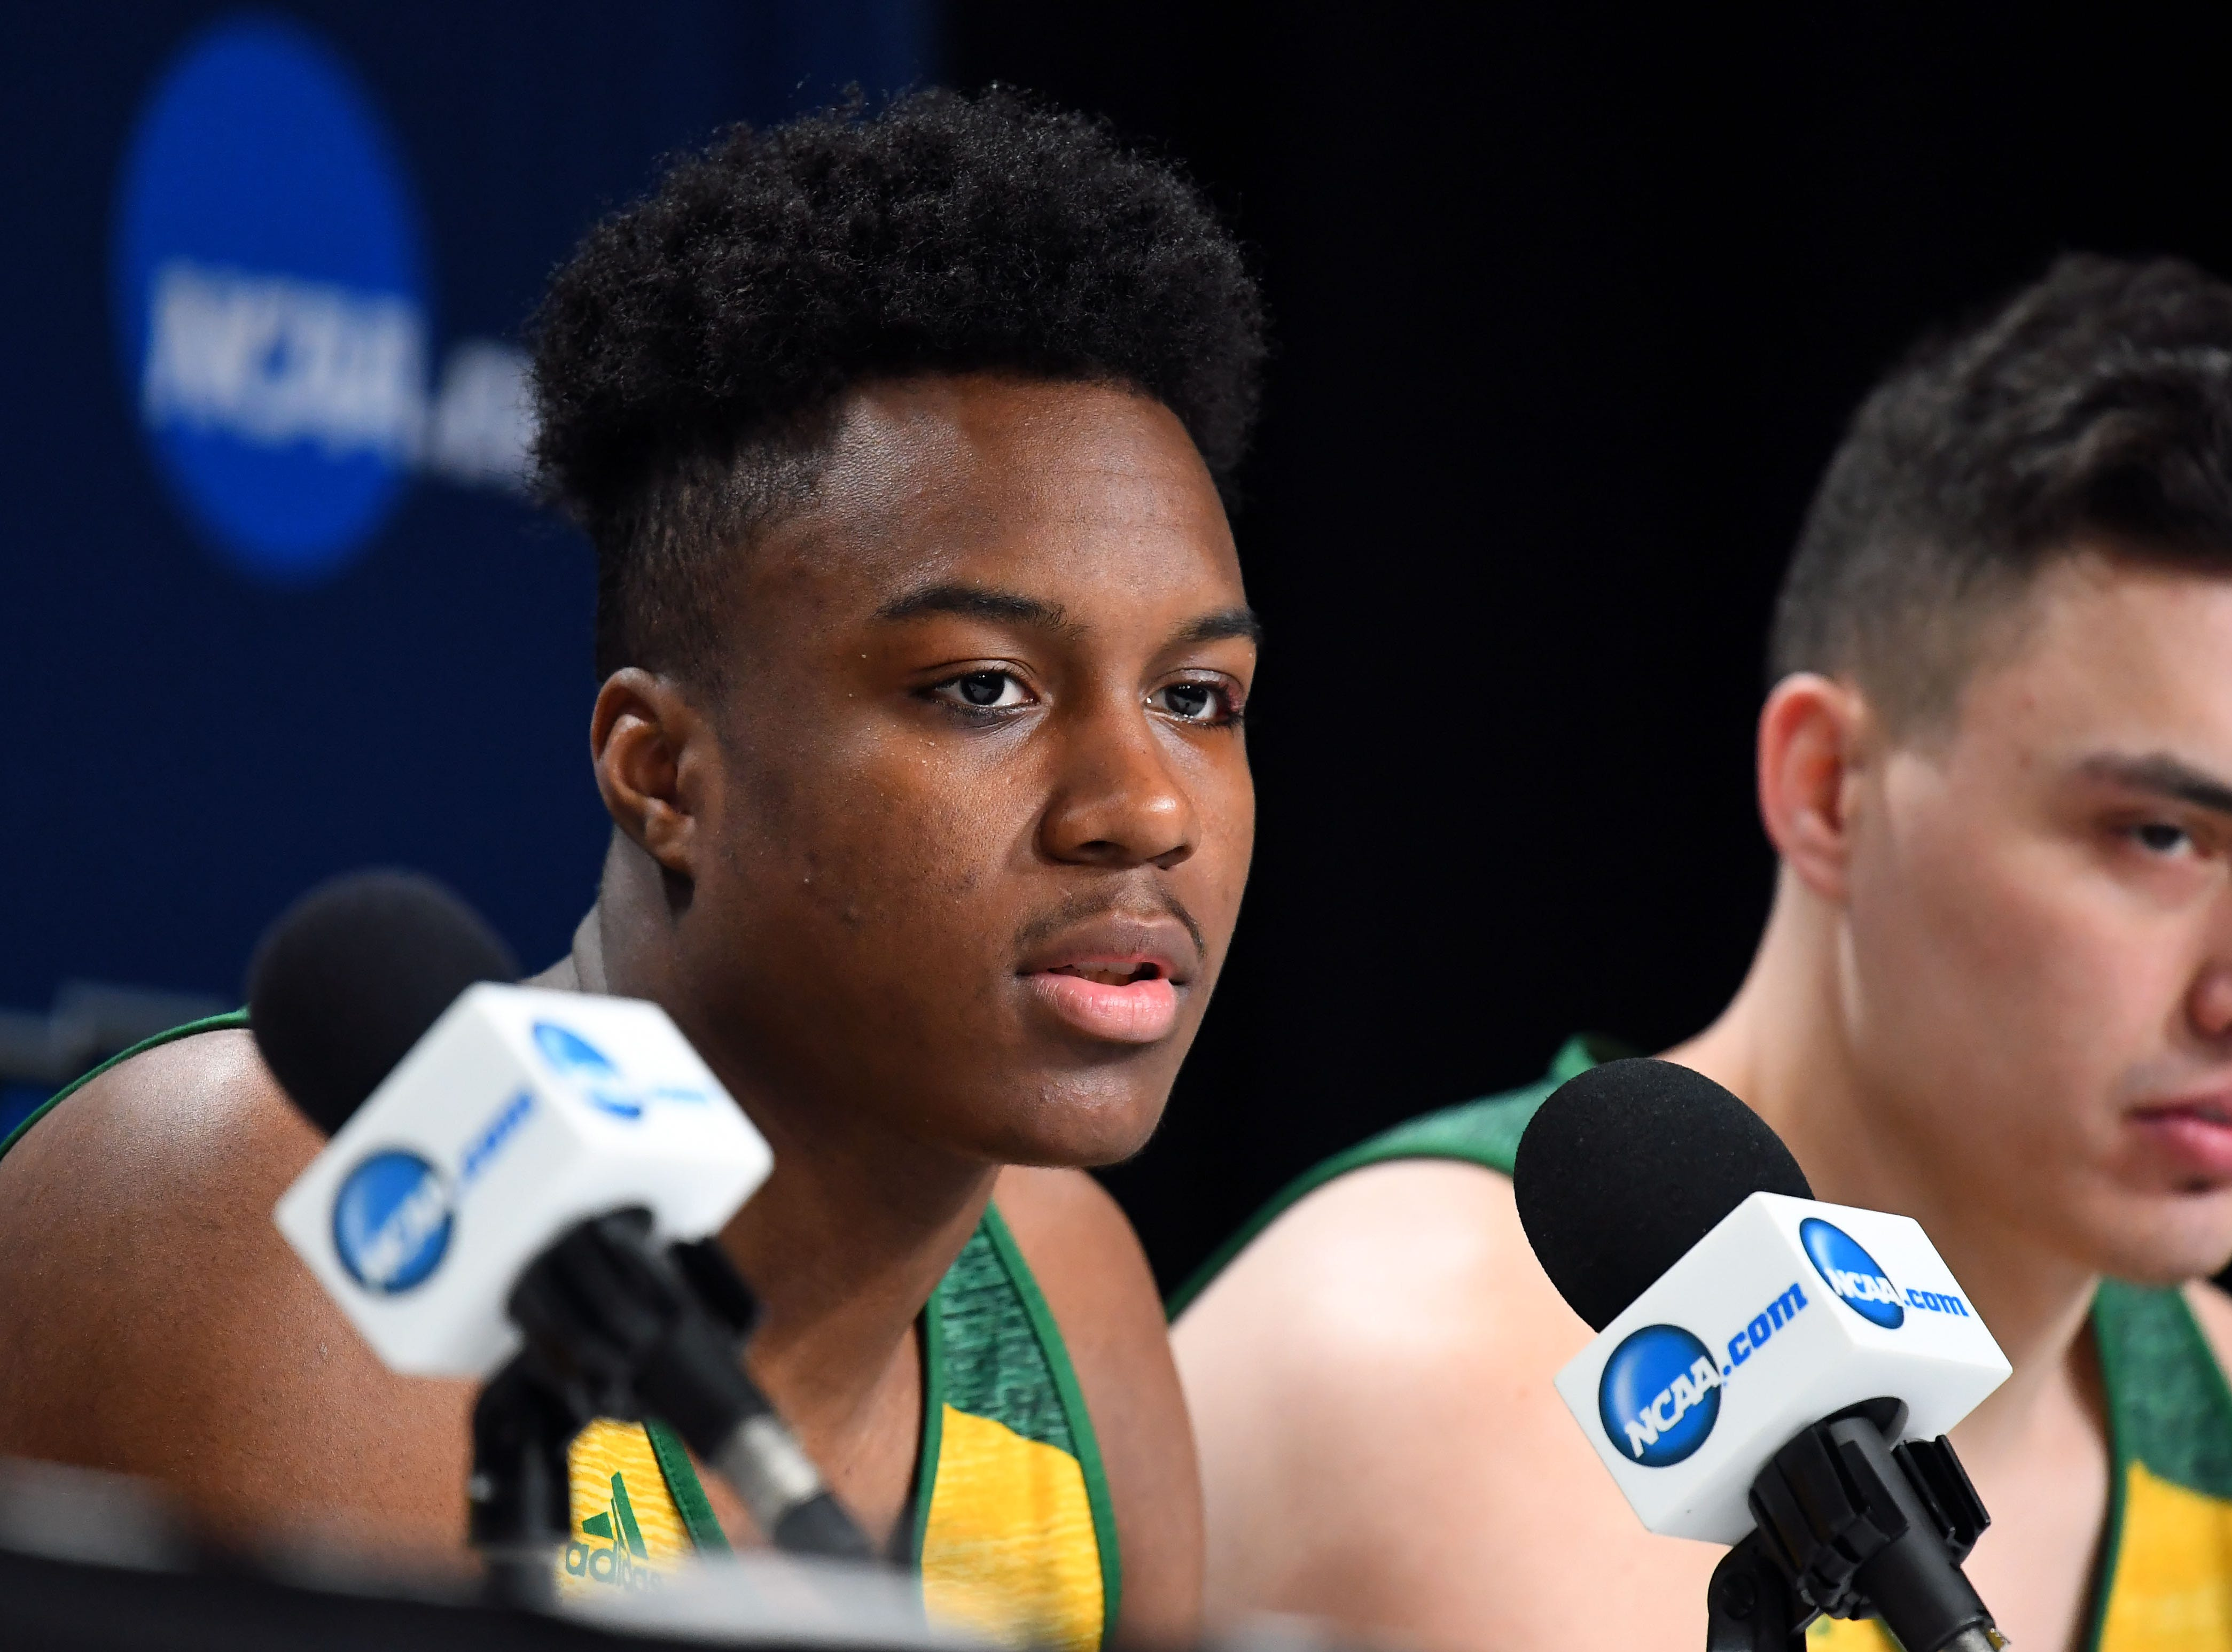 Mar 20, 2019; Hartford, CT, USA; Vermont Catamounts guard Stef Smith (0) speaks with the media before a practice in he first round of the 2019 NCAA Tournament at XL Center. Mandatory Credit: Robert Deutsch-USA TODAY Sports